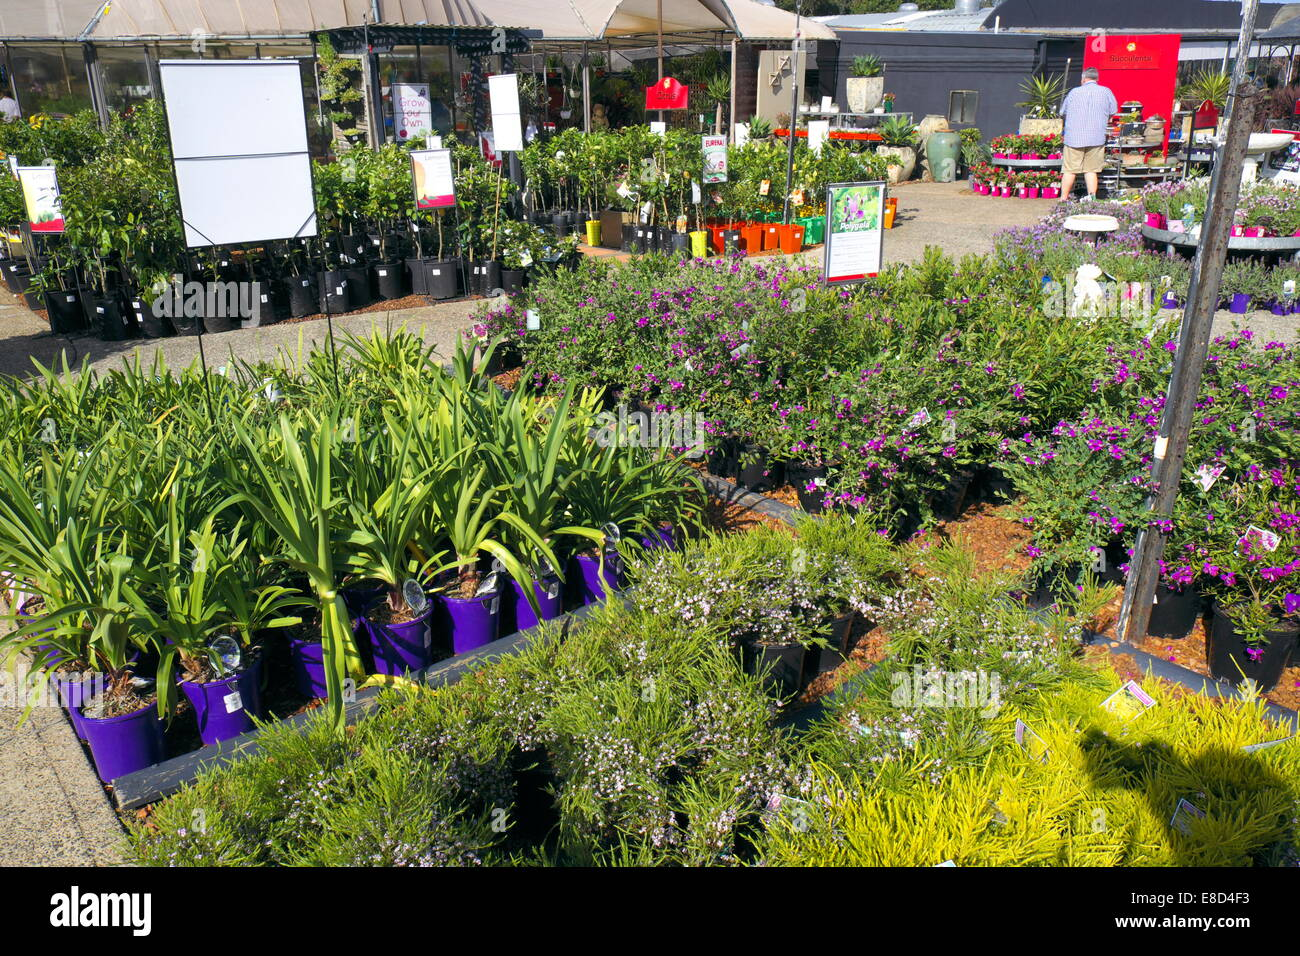 Buy Plants Sydney Sydney Garden Centre With A Display Of Plants For Sale To